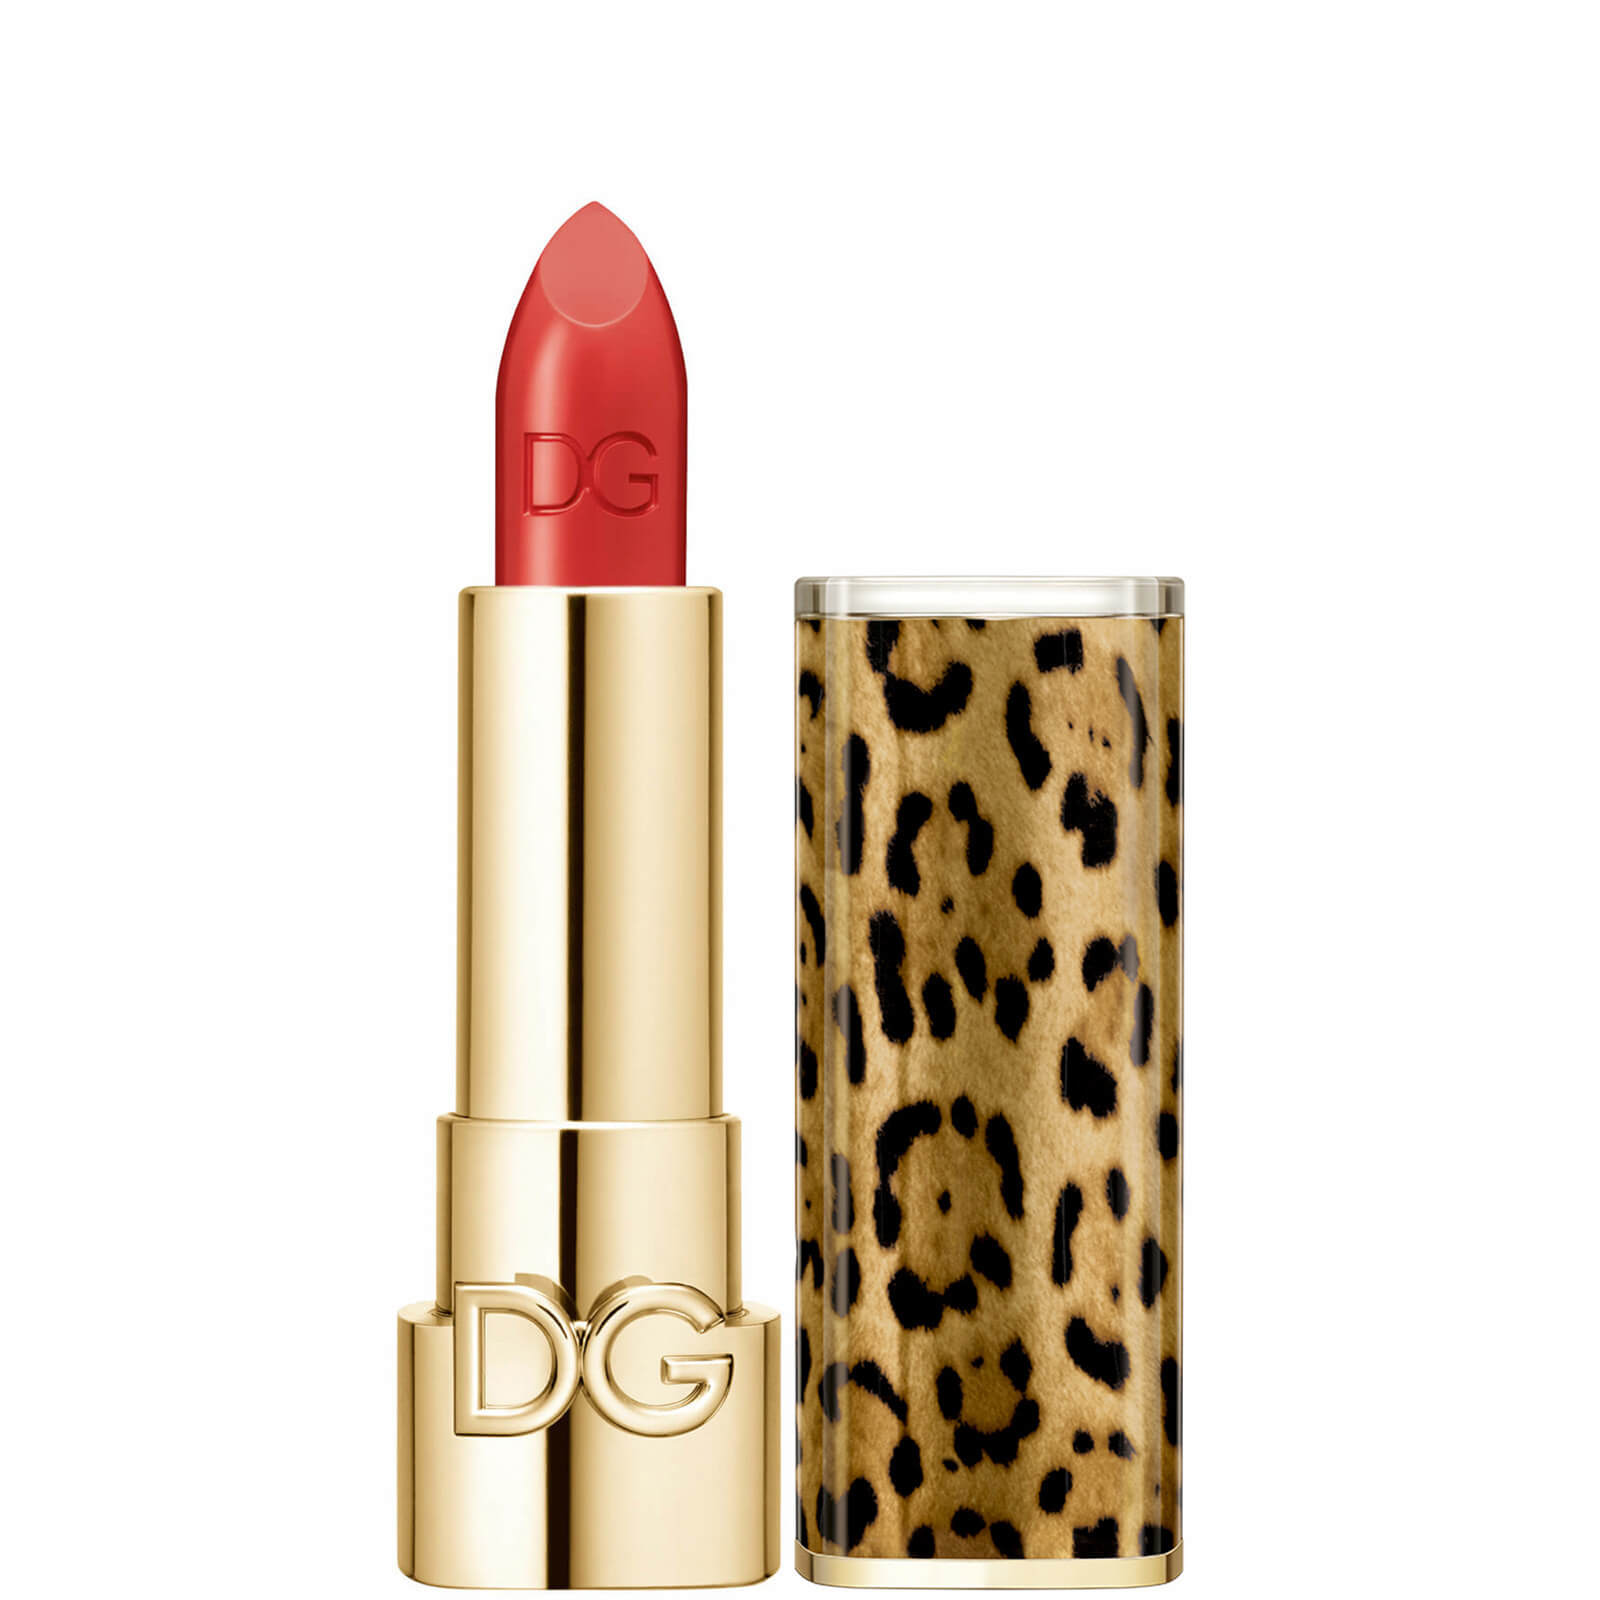 Dolce&Gabbana The Only One Lipstick + Cap (Animalier) (Various Shades) - 620 Queen of Hearts